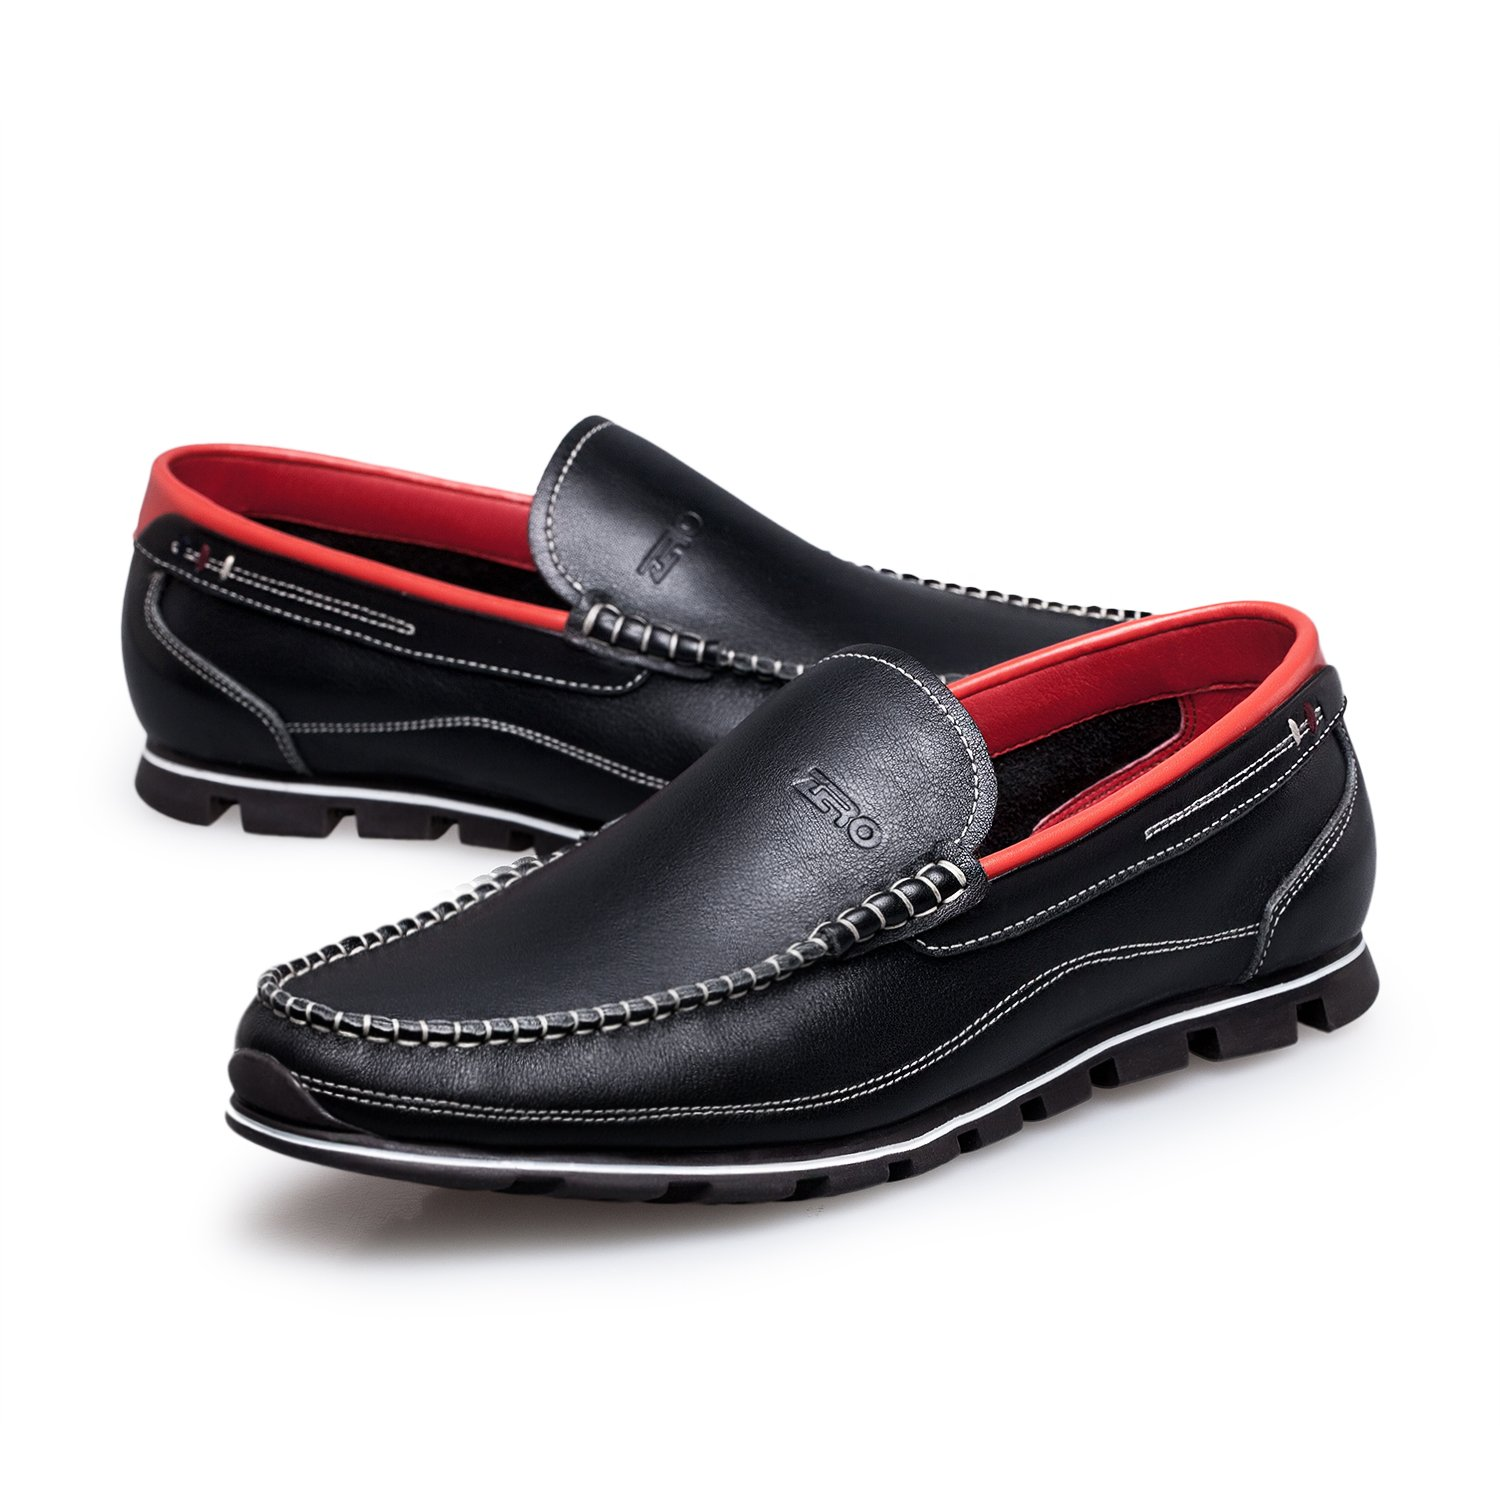 ZRO Men's Classy Black Penny Slip-on Loafer for Driving Working Walking Dress Running 10 M US by ZRO (Image #7)